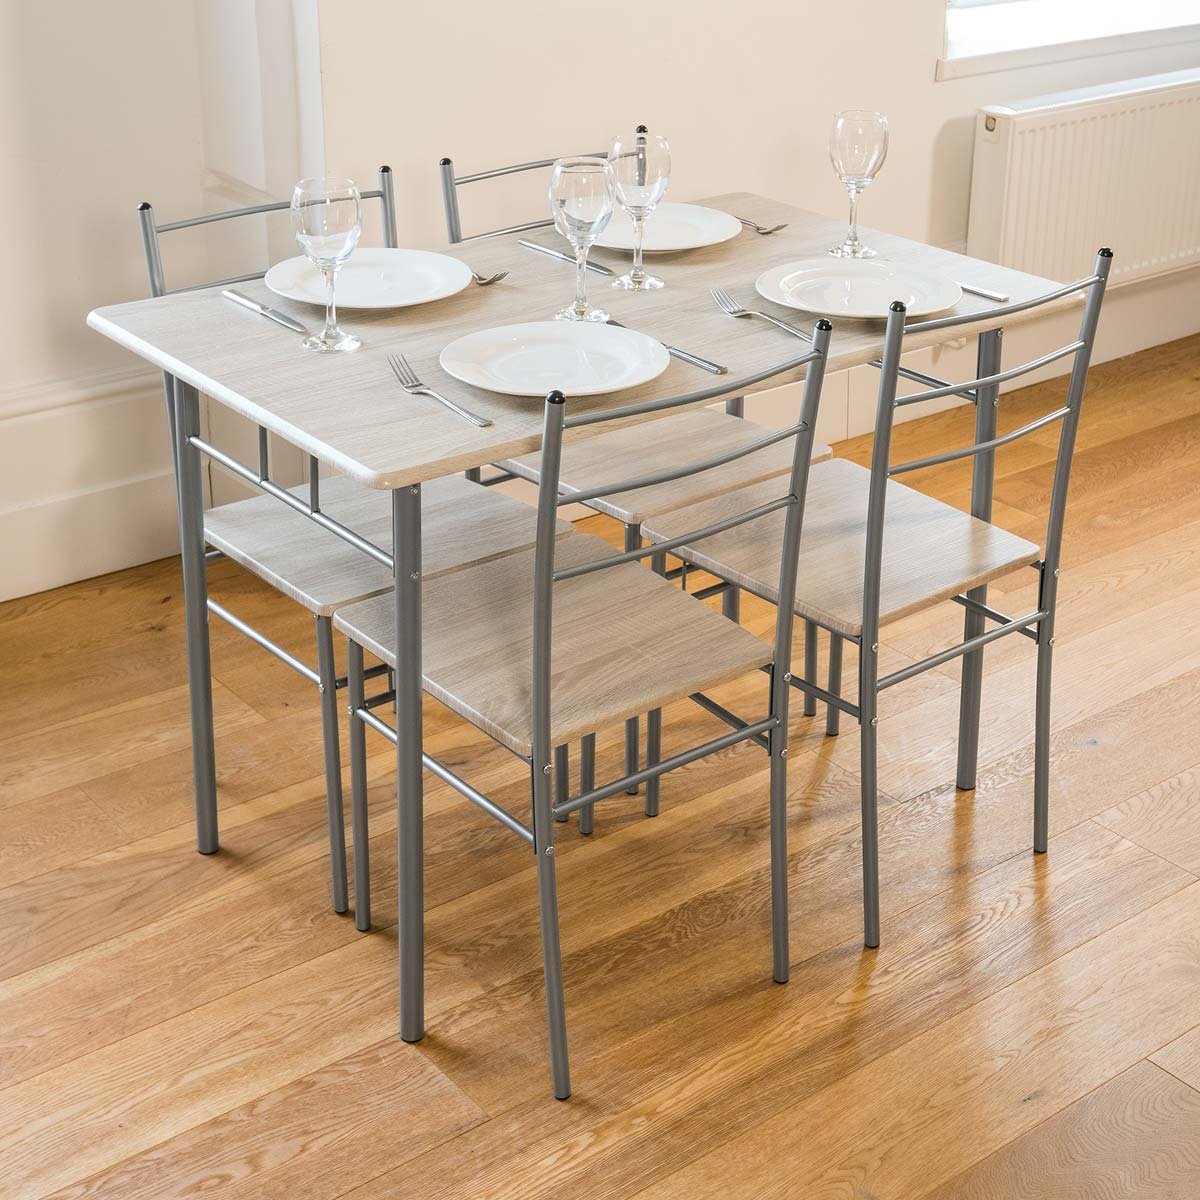 Image of Cecilia 5 Piece Table & Chair Set - Chrome